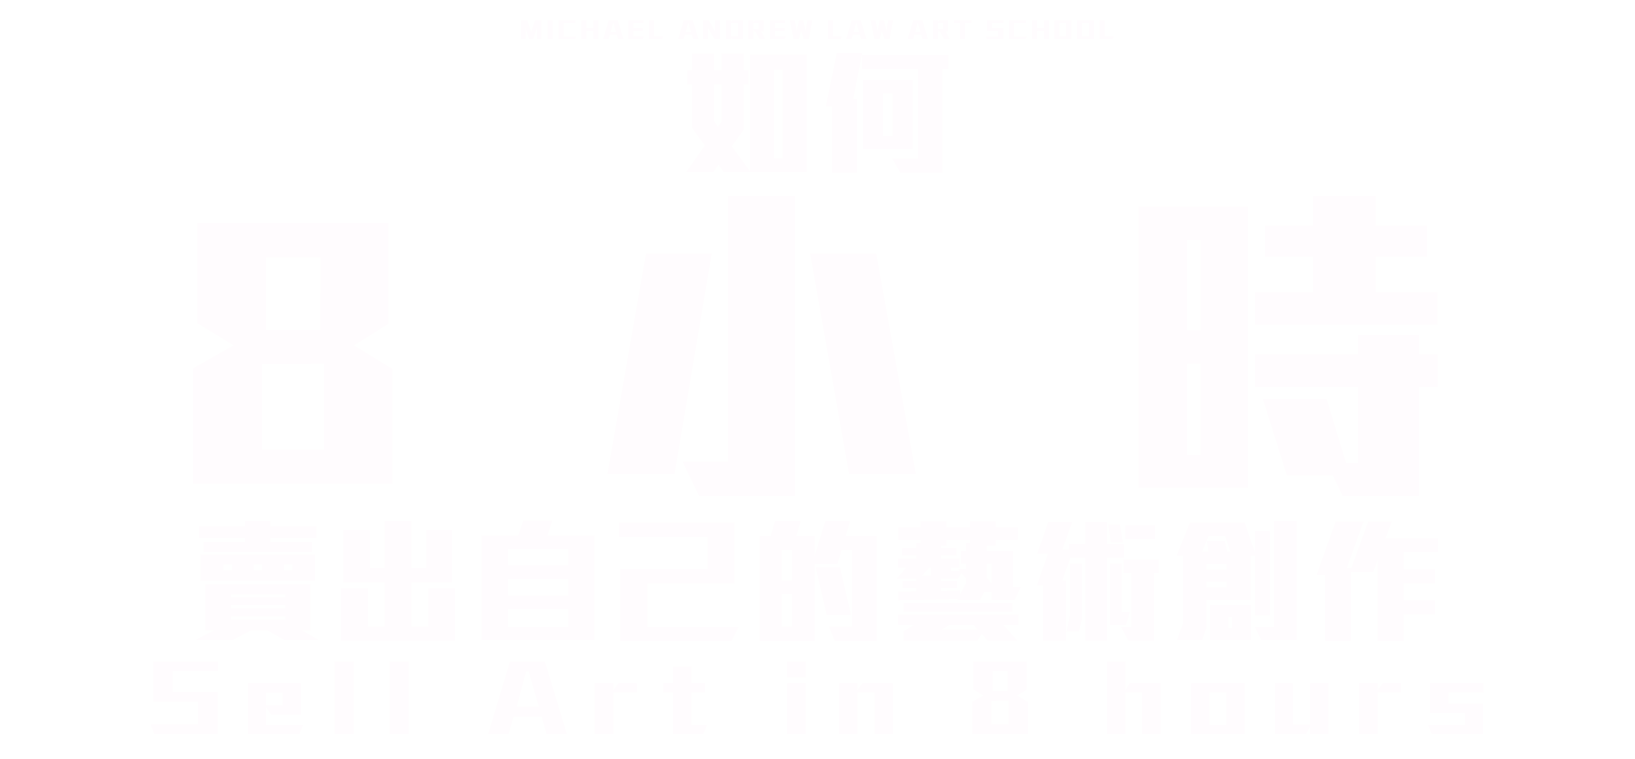 Sell Art in 8 hours